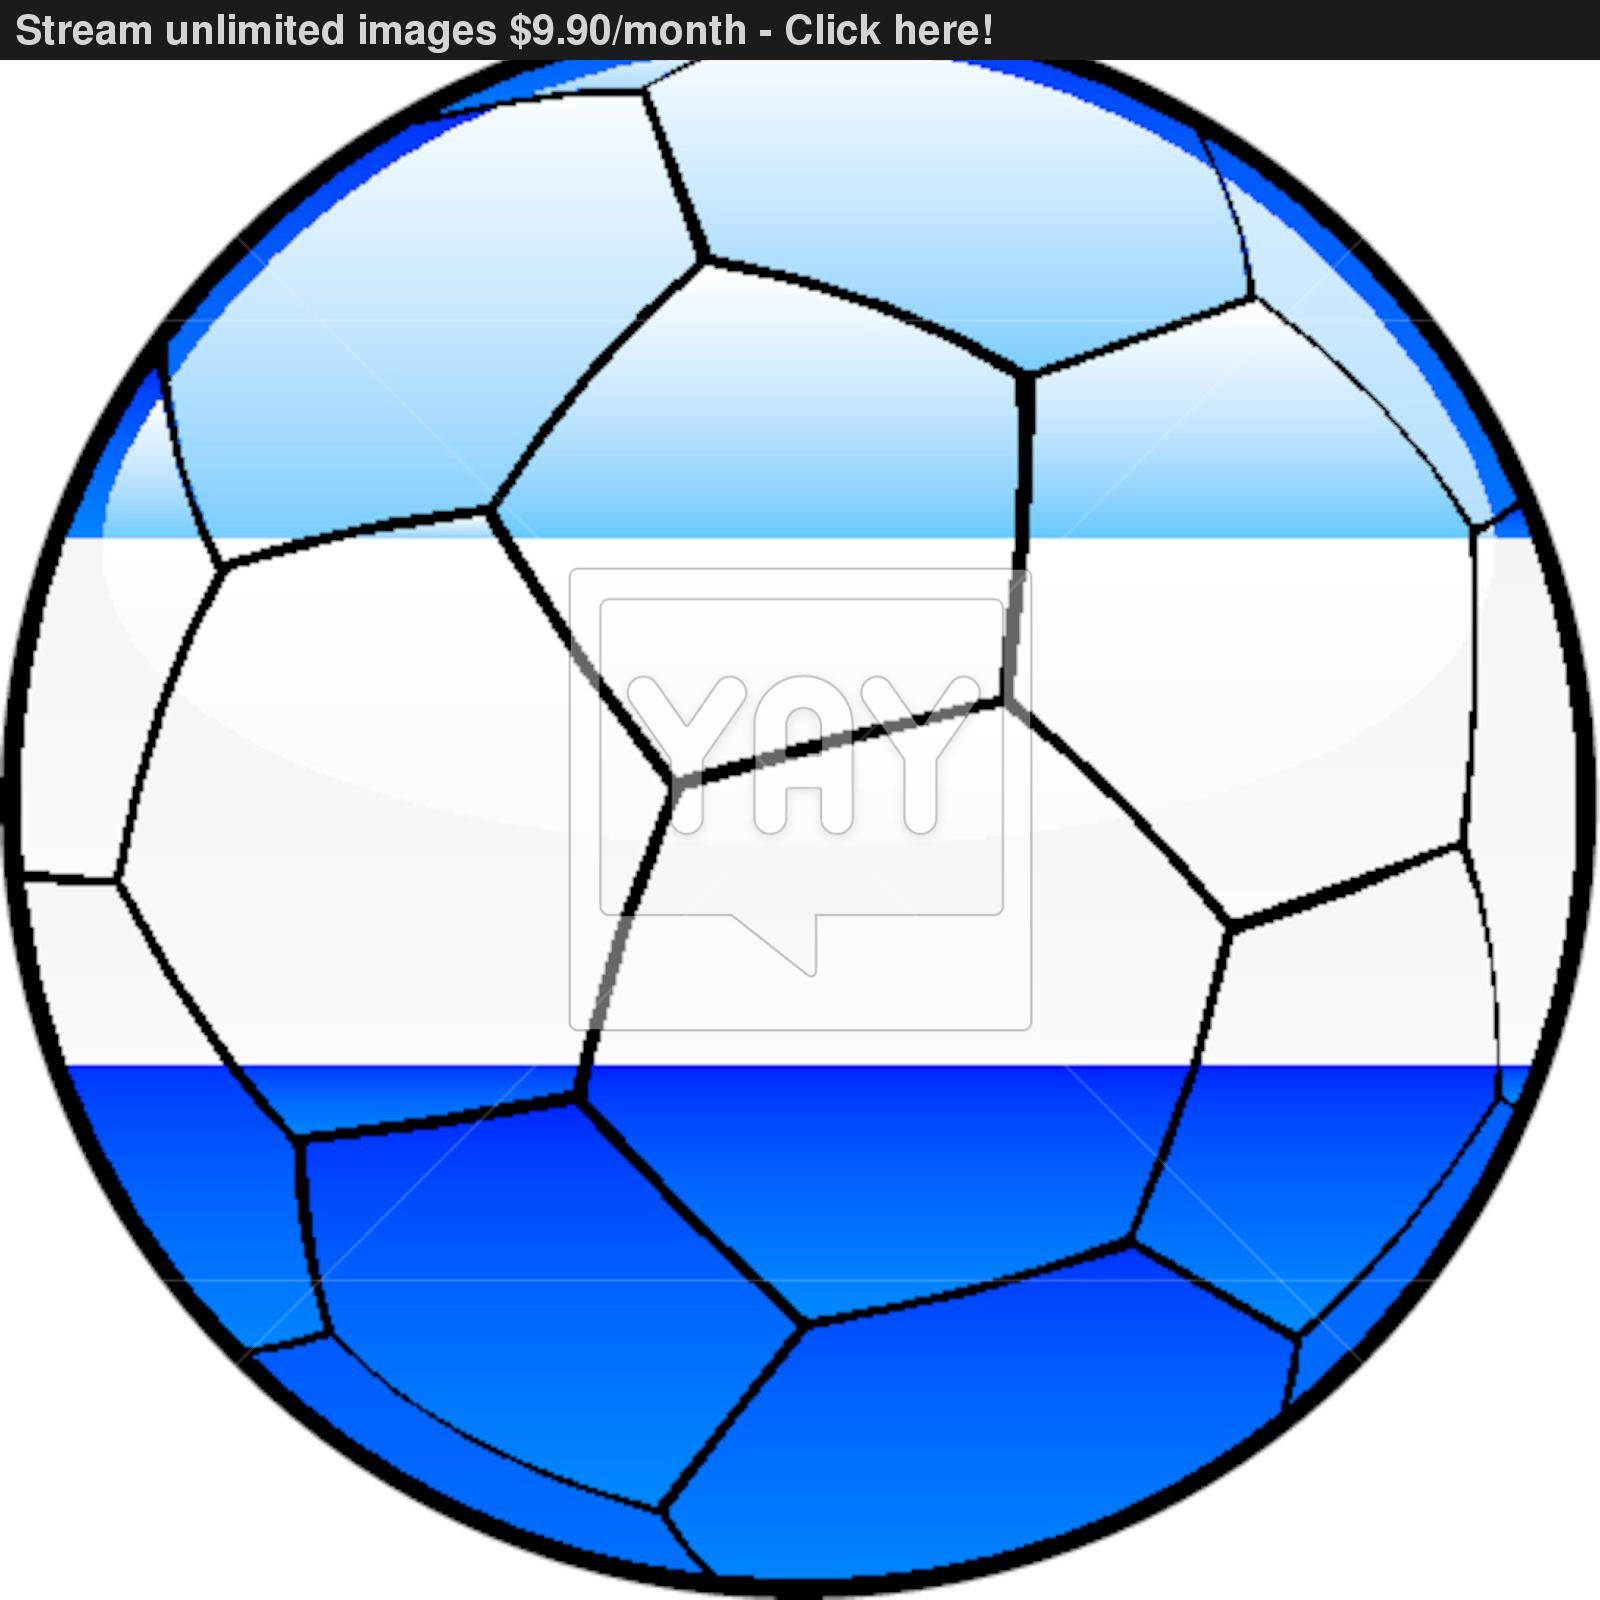 1600x1600 El Salvador Flag On Soccer Ball Vector